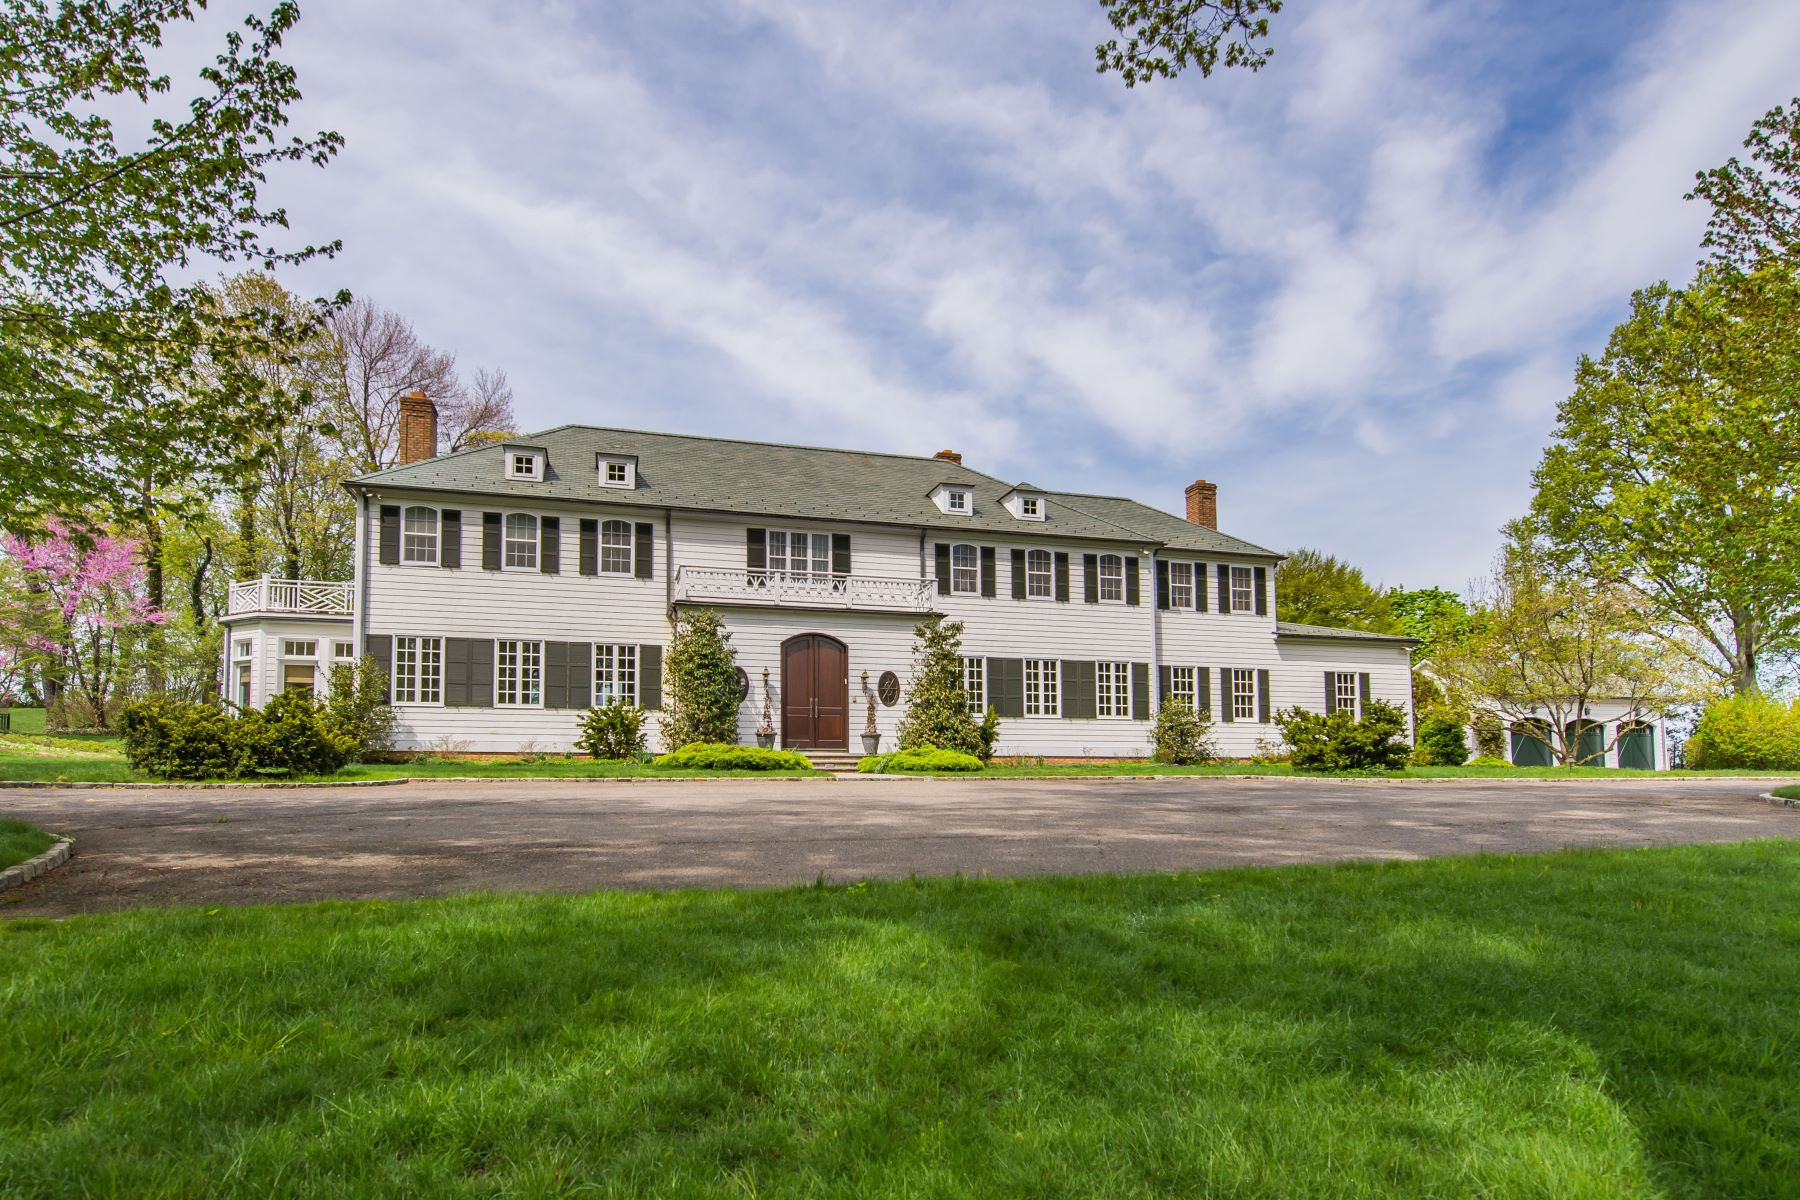 Single Family Homes for Sale at 234 Centre Island Rd Centre Island, New York 11771 United States